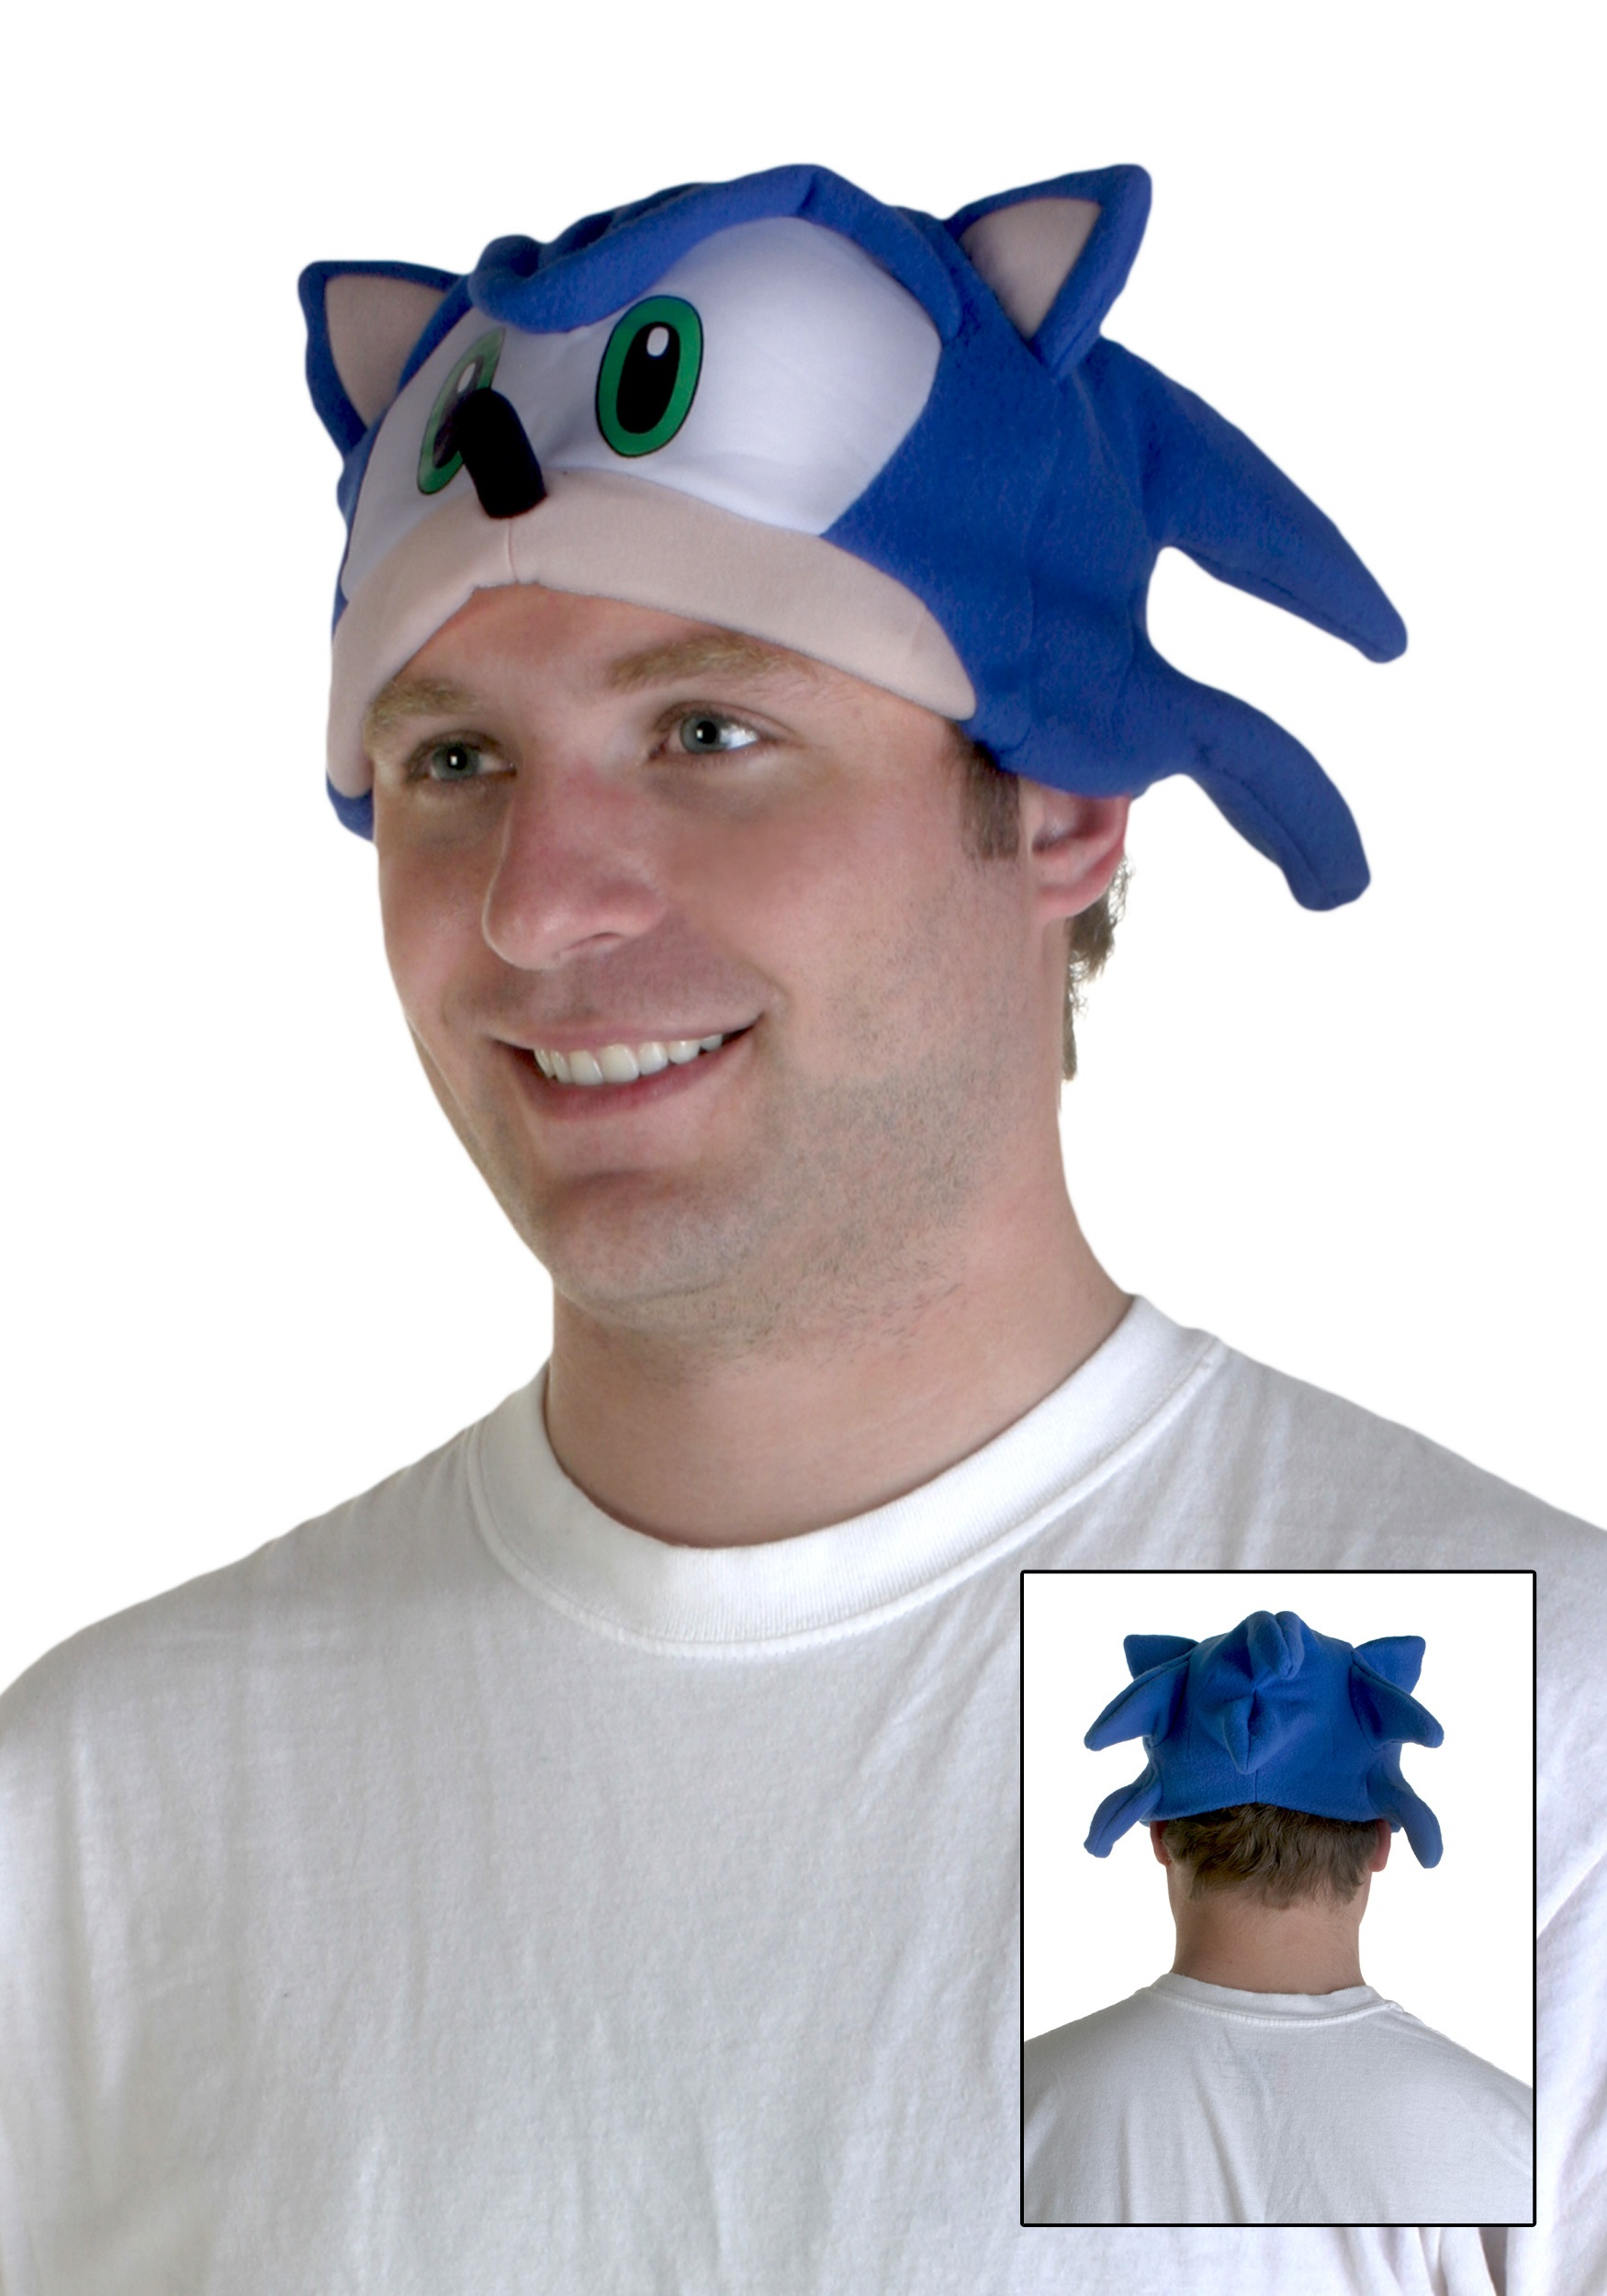 Sonic The Hedgehog Fleece Cap Halloween Costume Ideas 2019